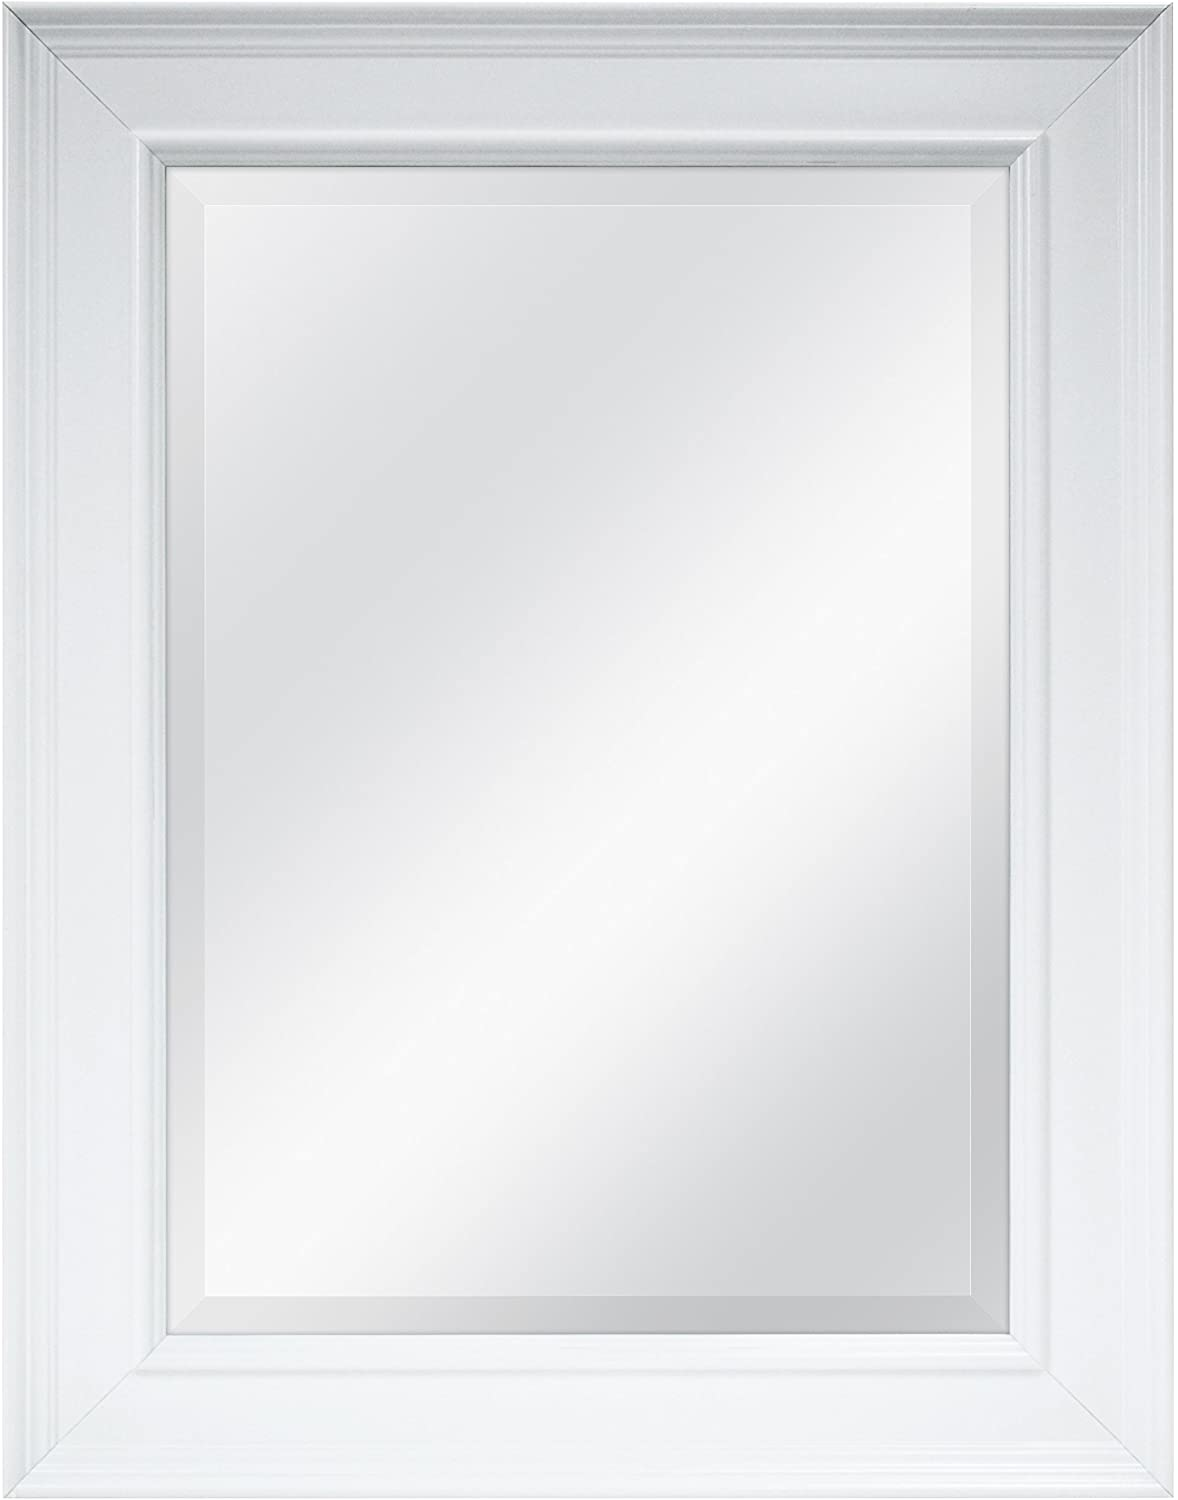 MCS Wall Mirror, White: Home & Kitchen